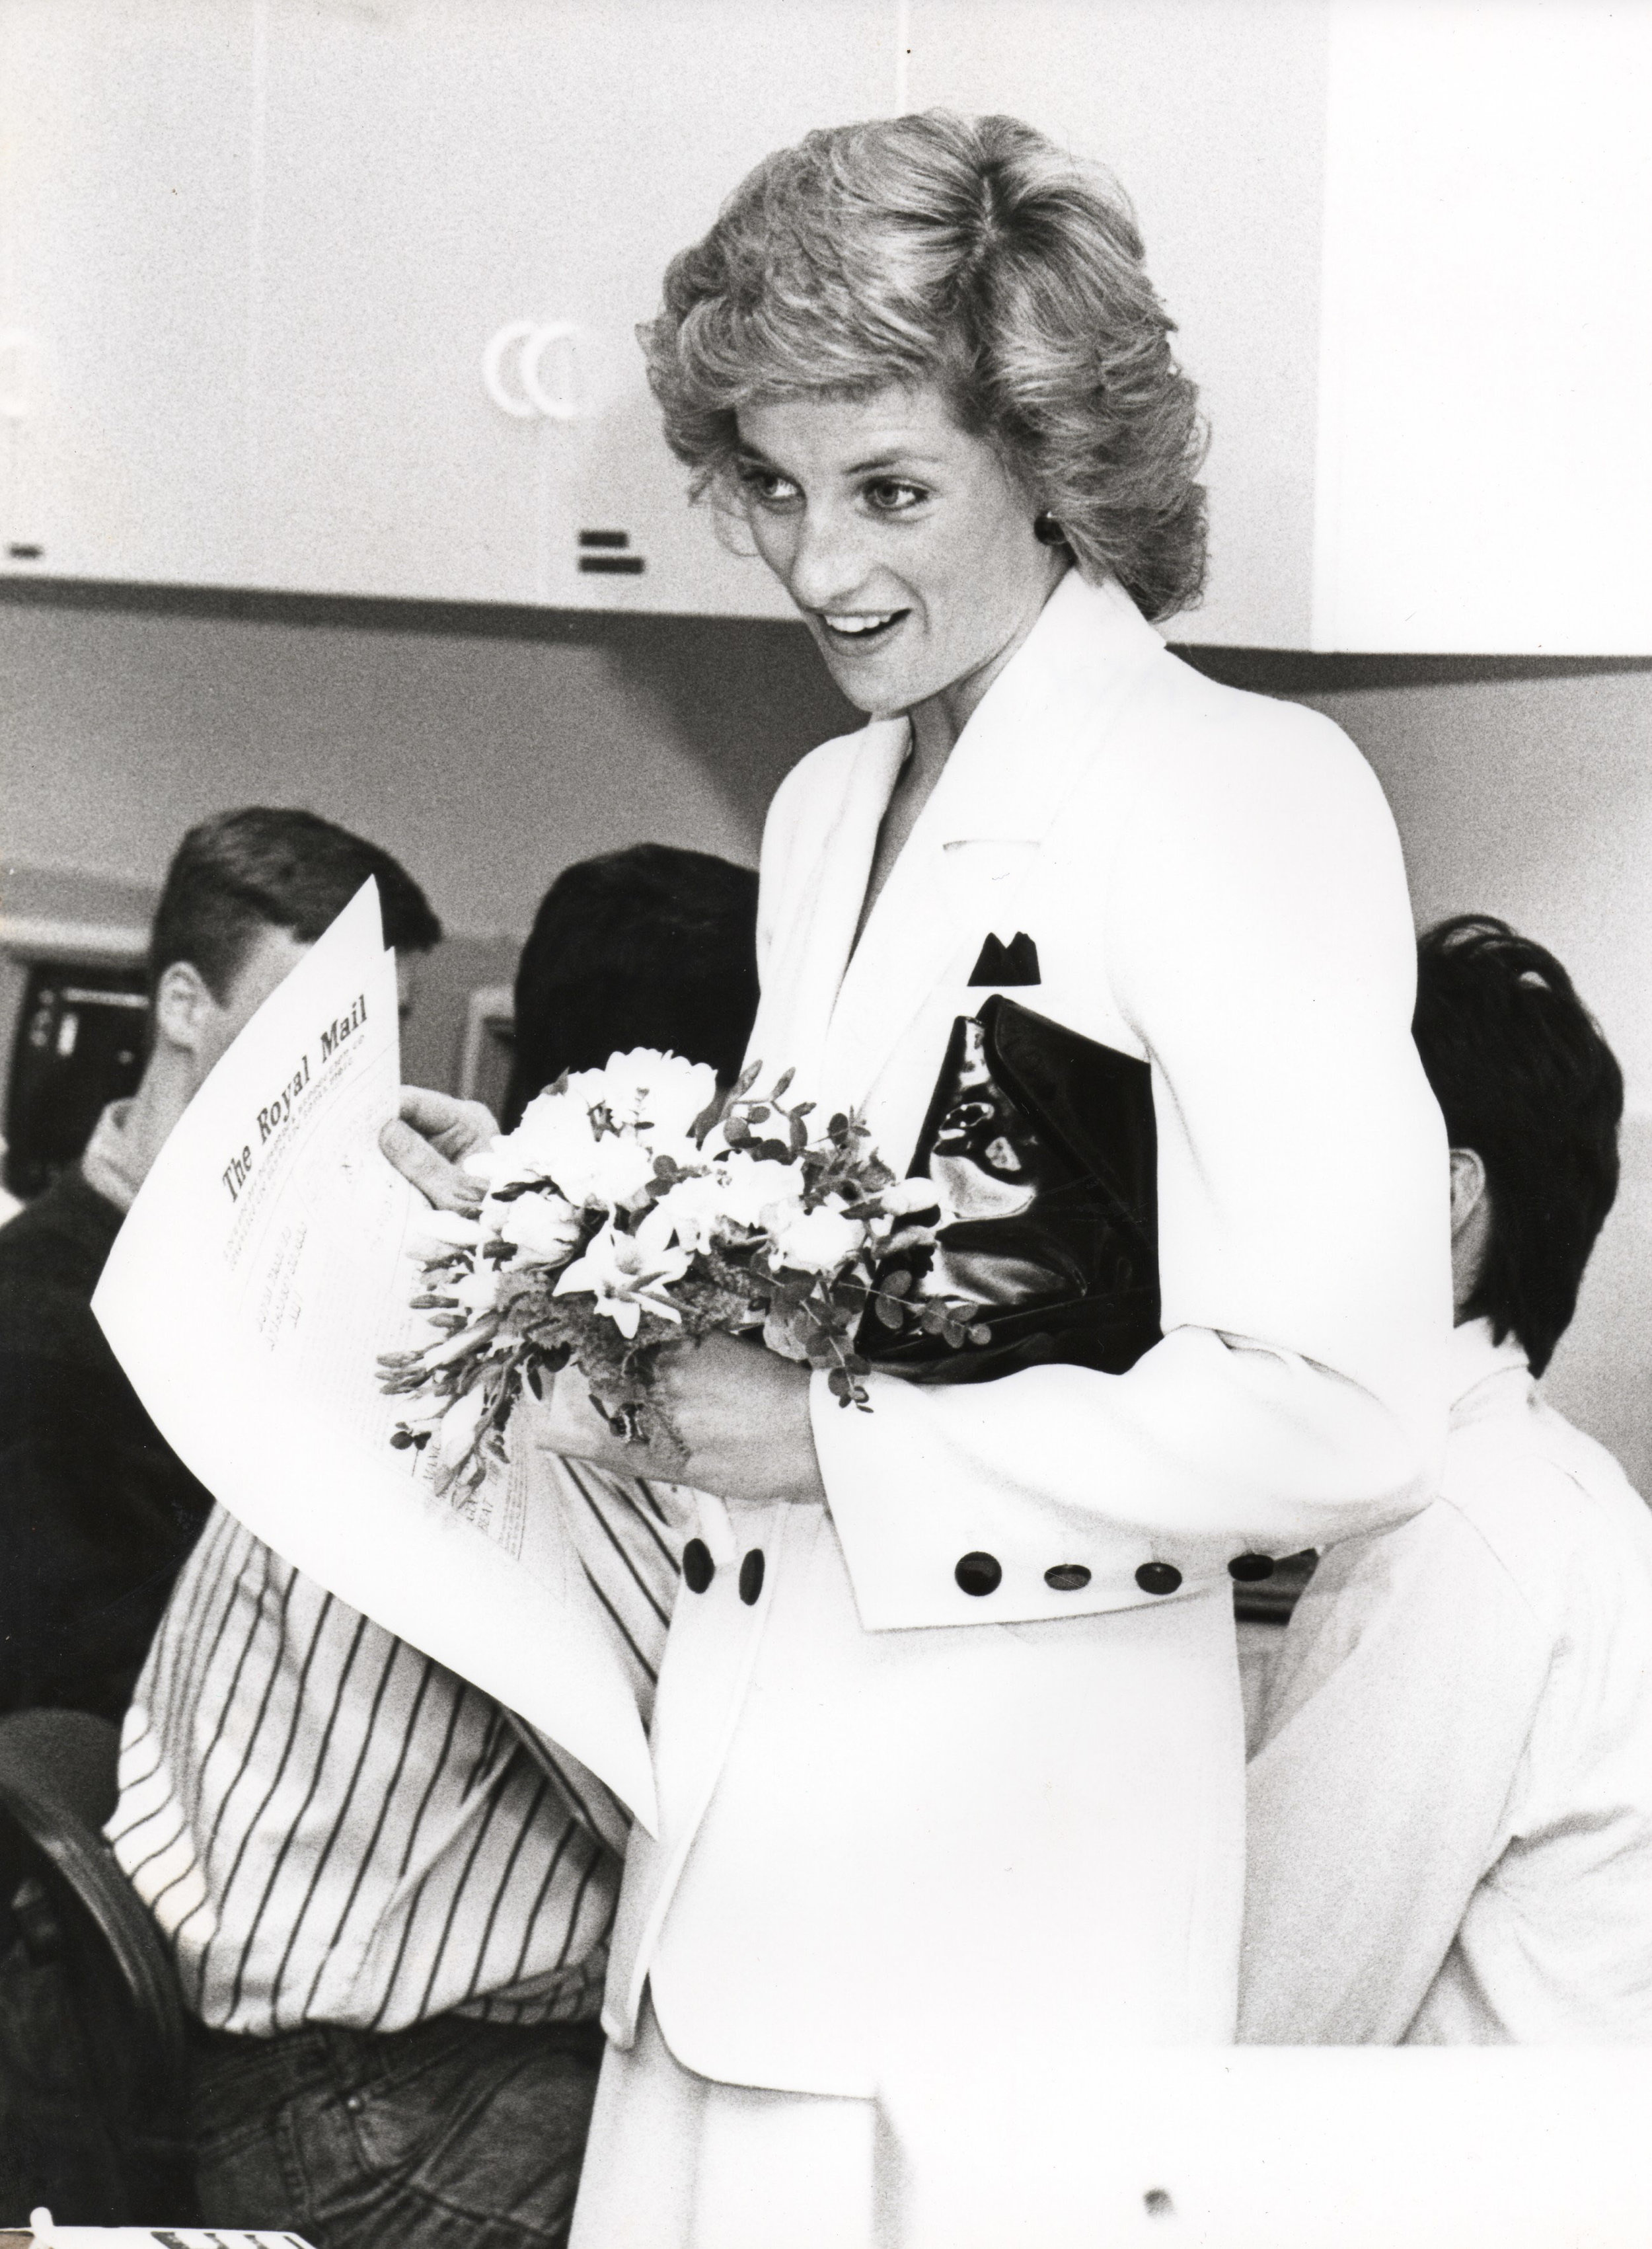 Princess Diana in her happier days, I photographed her several times, but always invited, I never did the paparazzi thing.